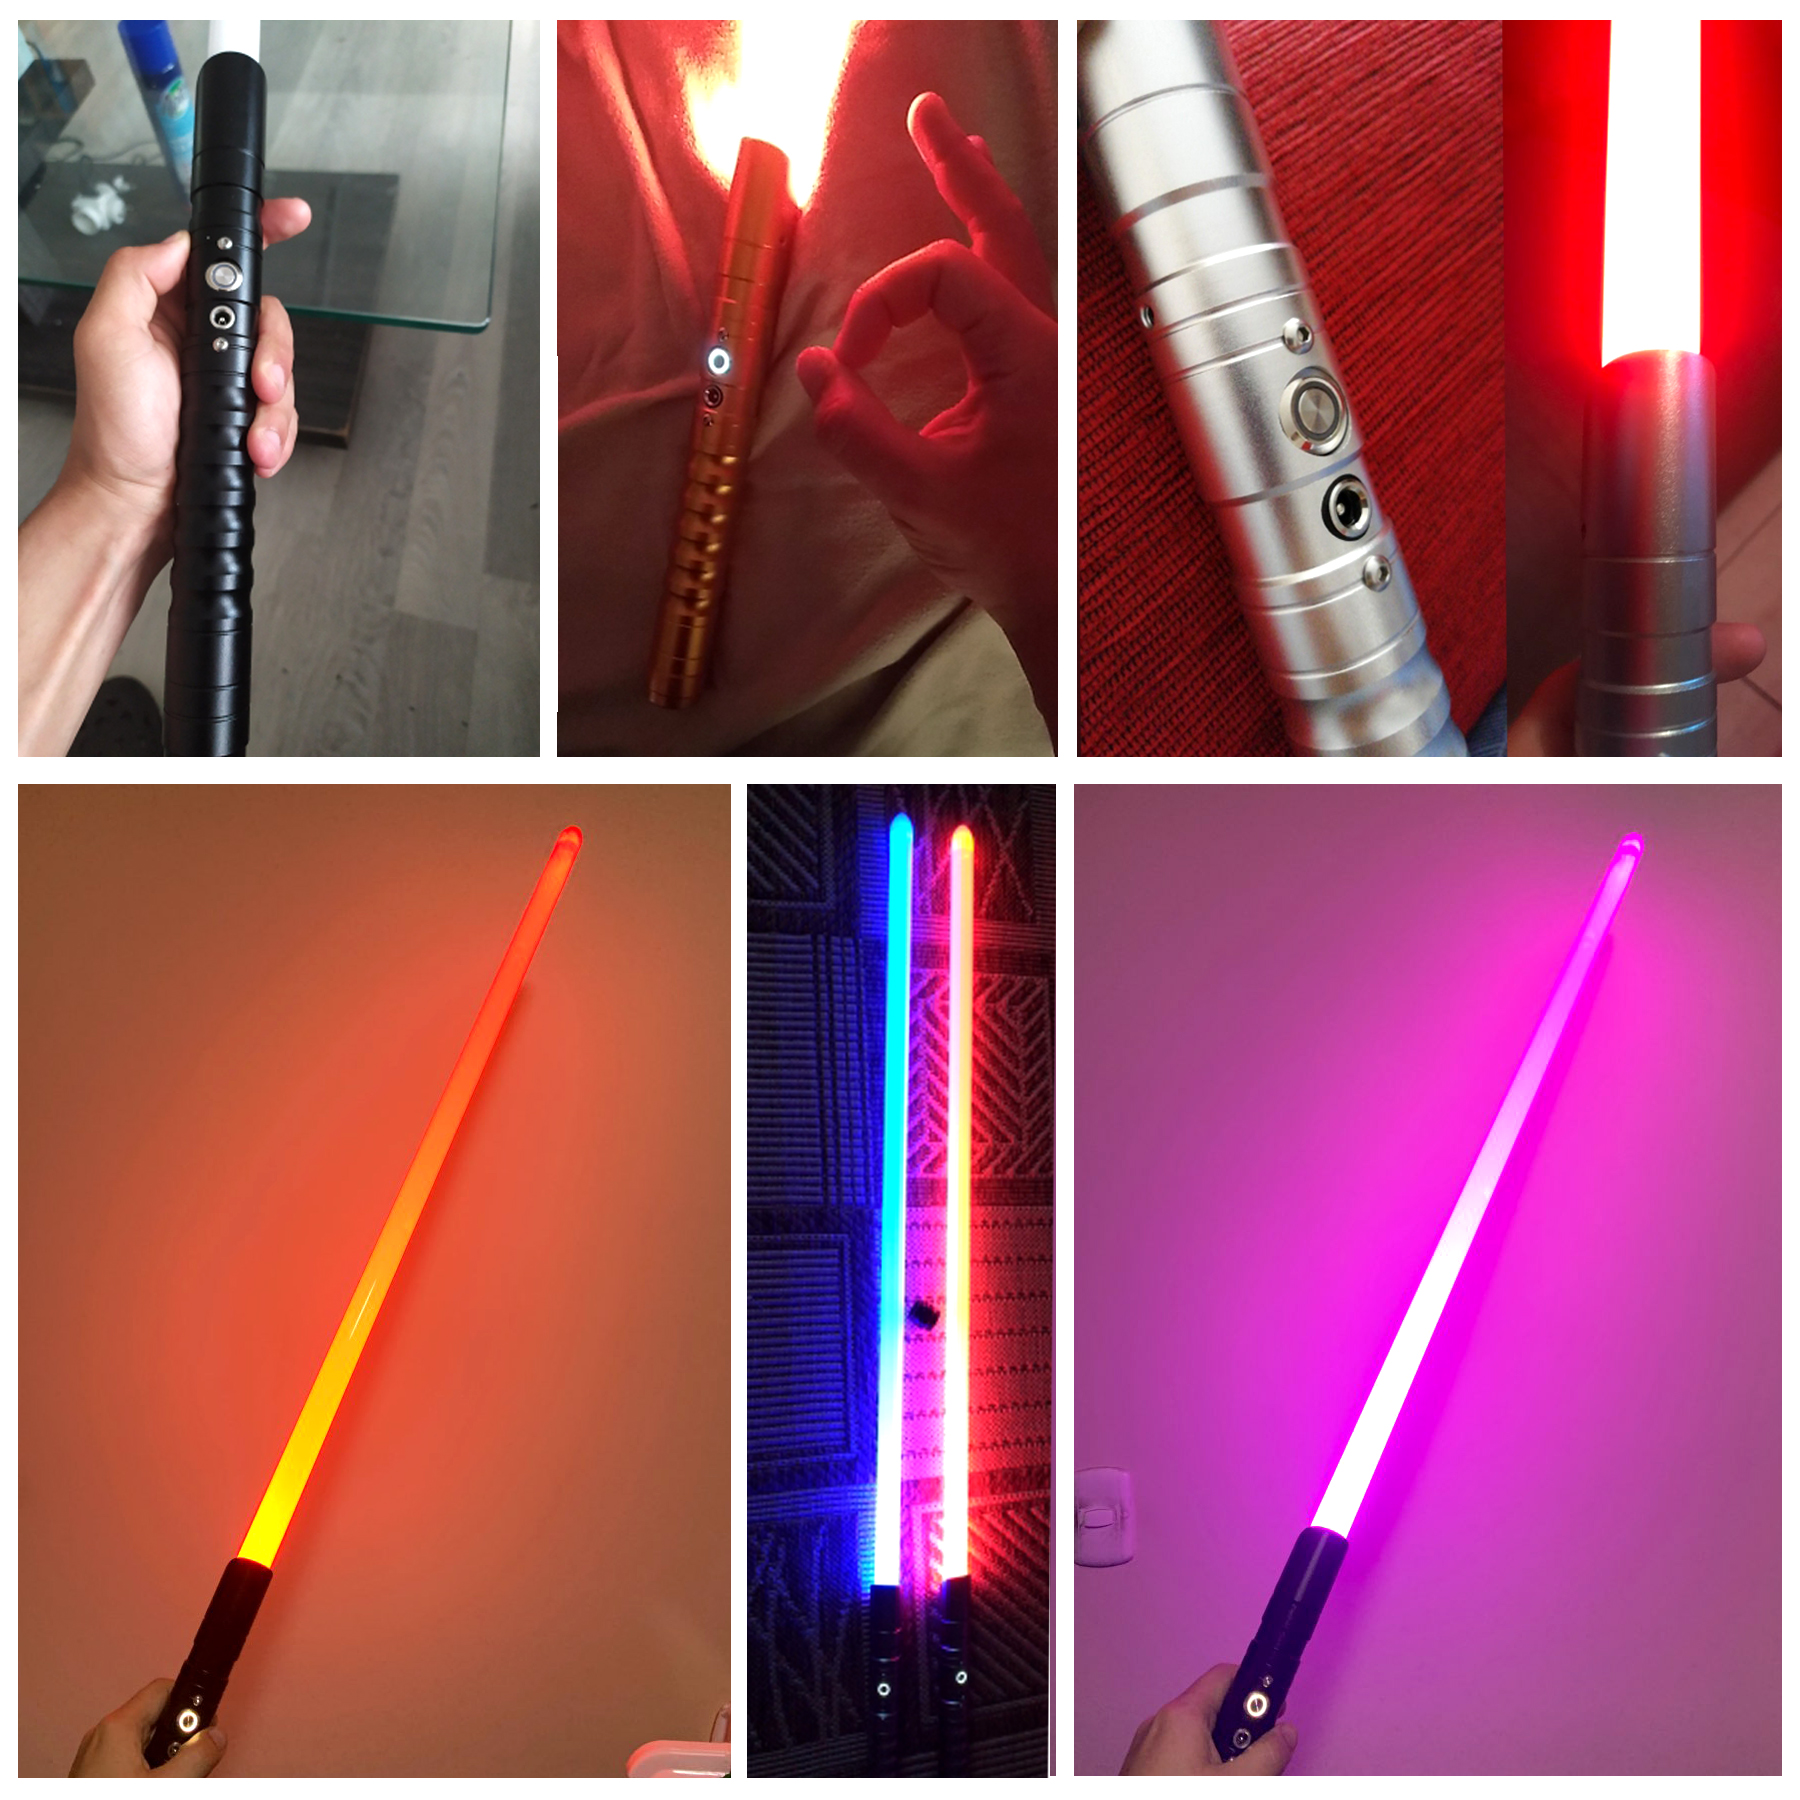 11 Color Lightsaber Light saber Metal Sword RGB Discoloration Laser Cosplay Toy Luminous Outdoor Creative Wars